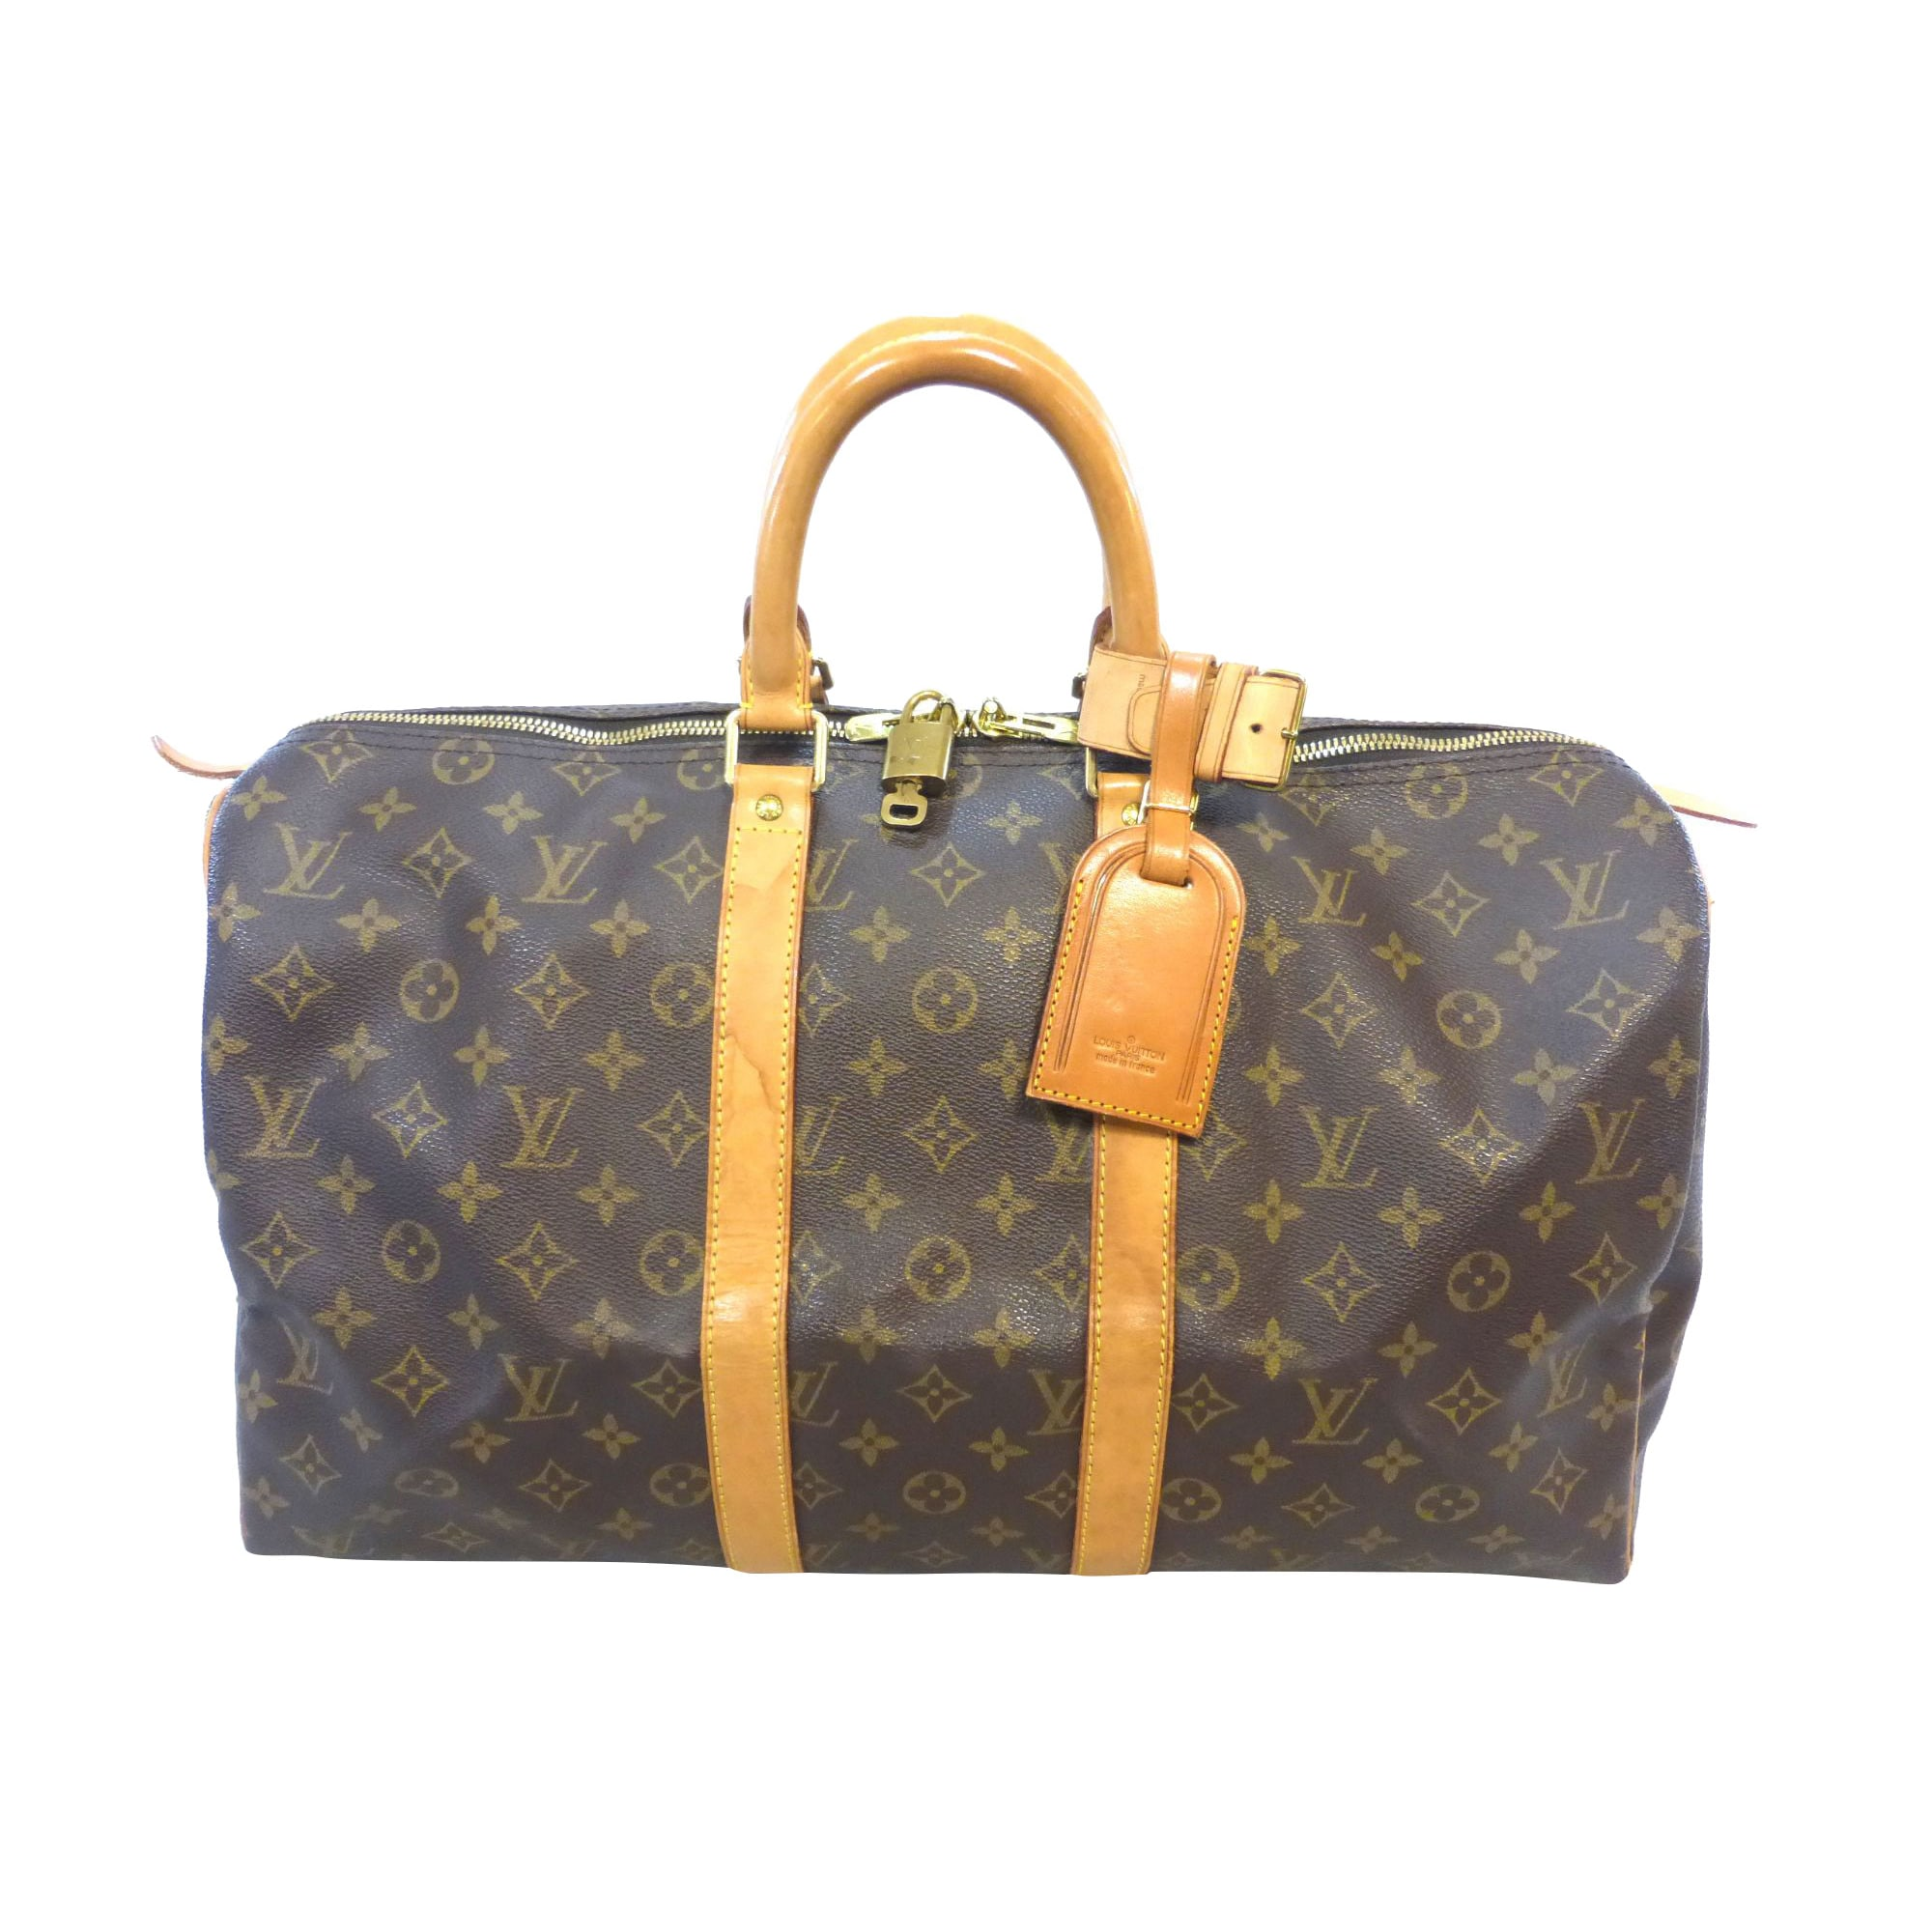 Sac XL en cuir LOUIS VUITTON Keepall Marron